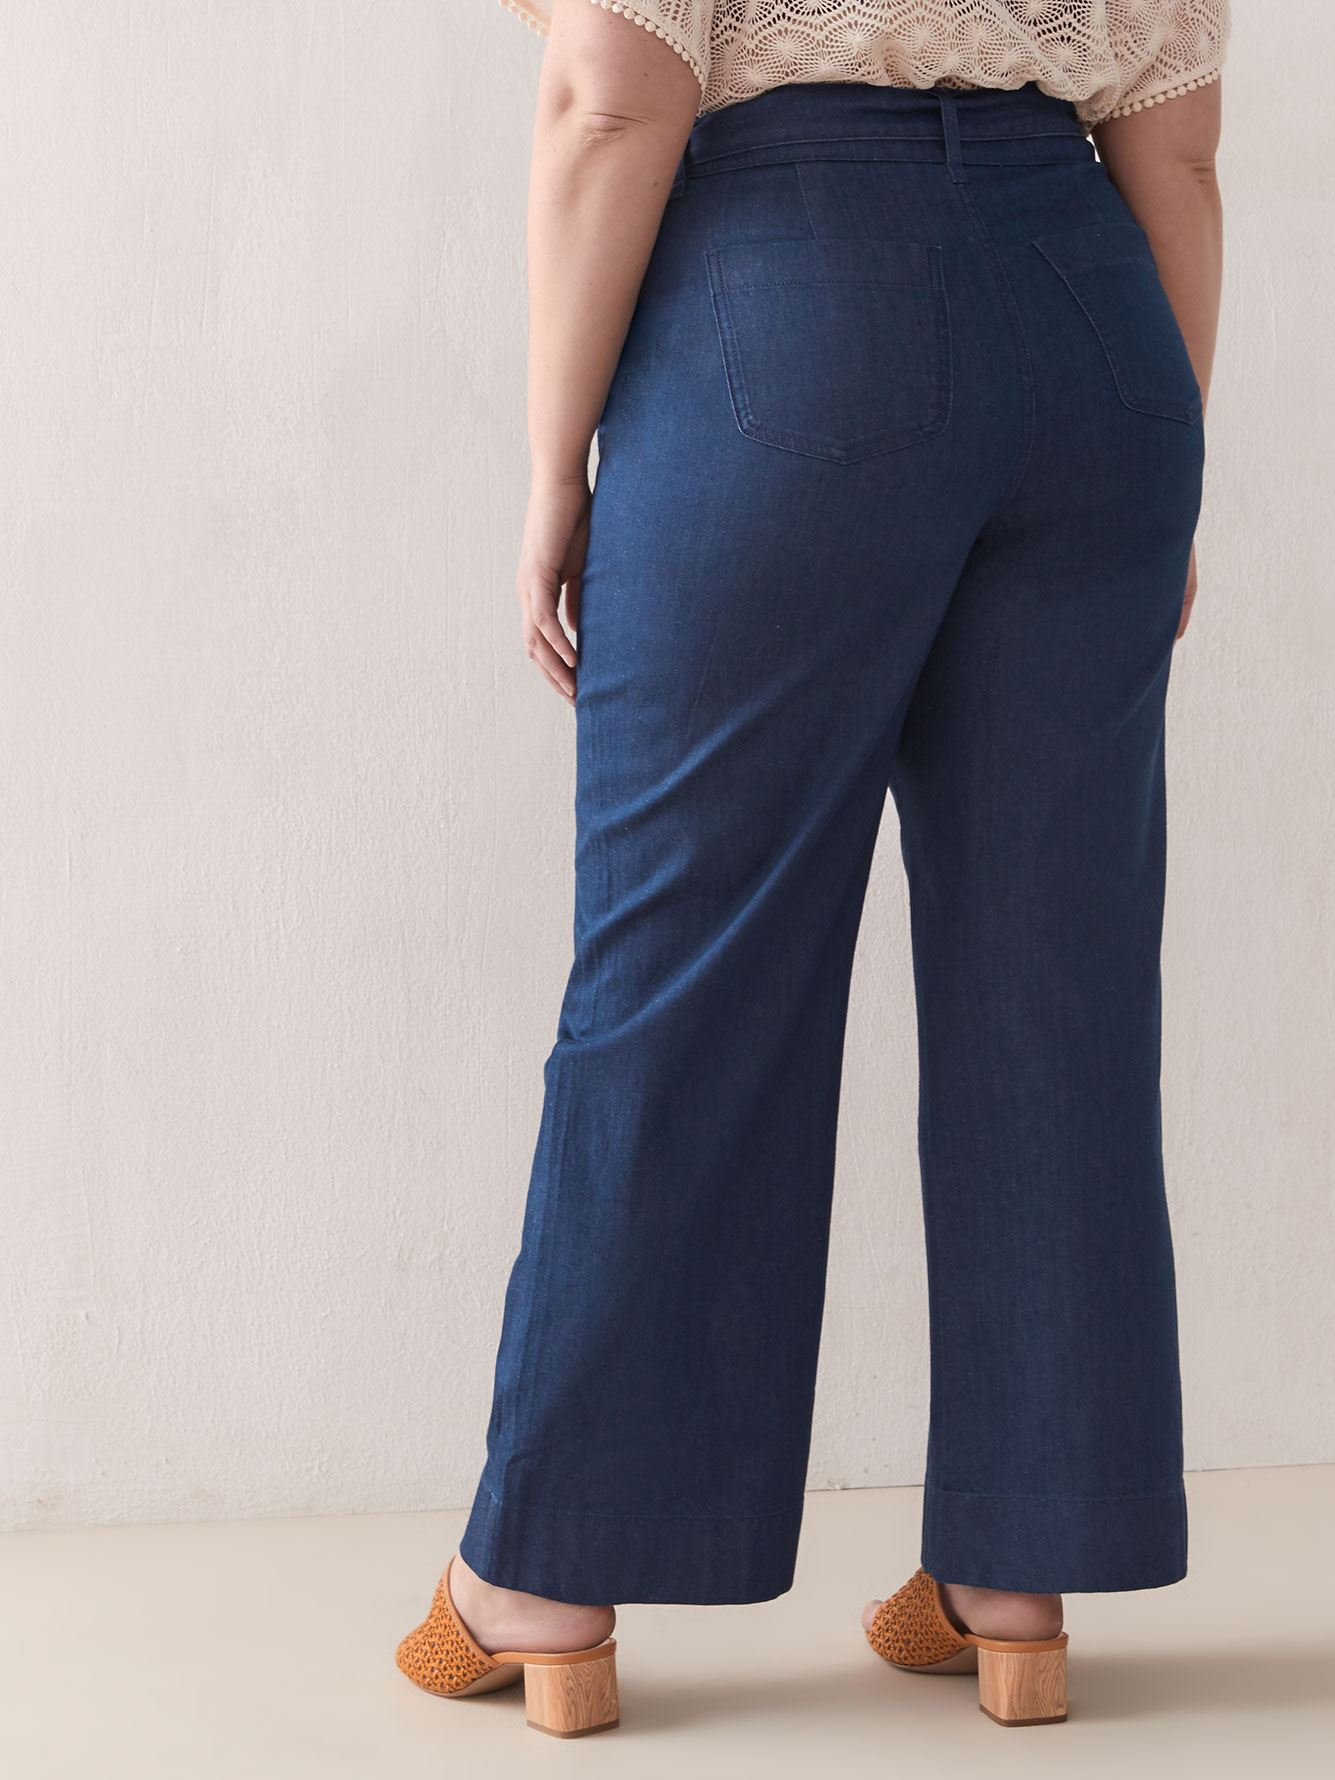 Belted Wide-Leg Denim Pant - Addition Elle